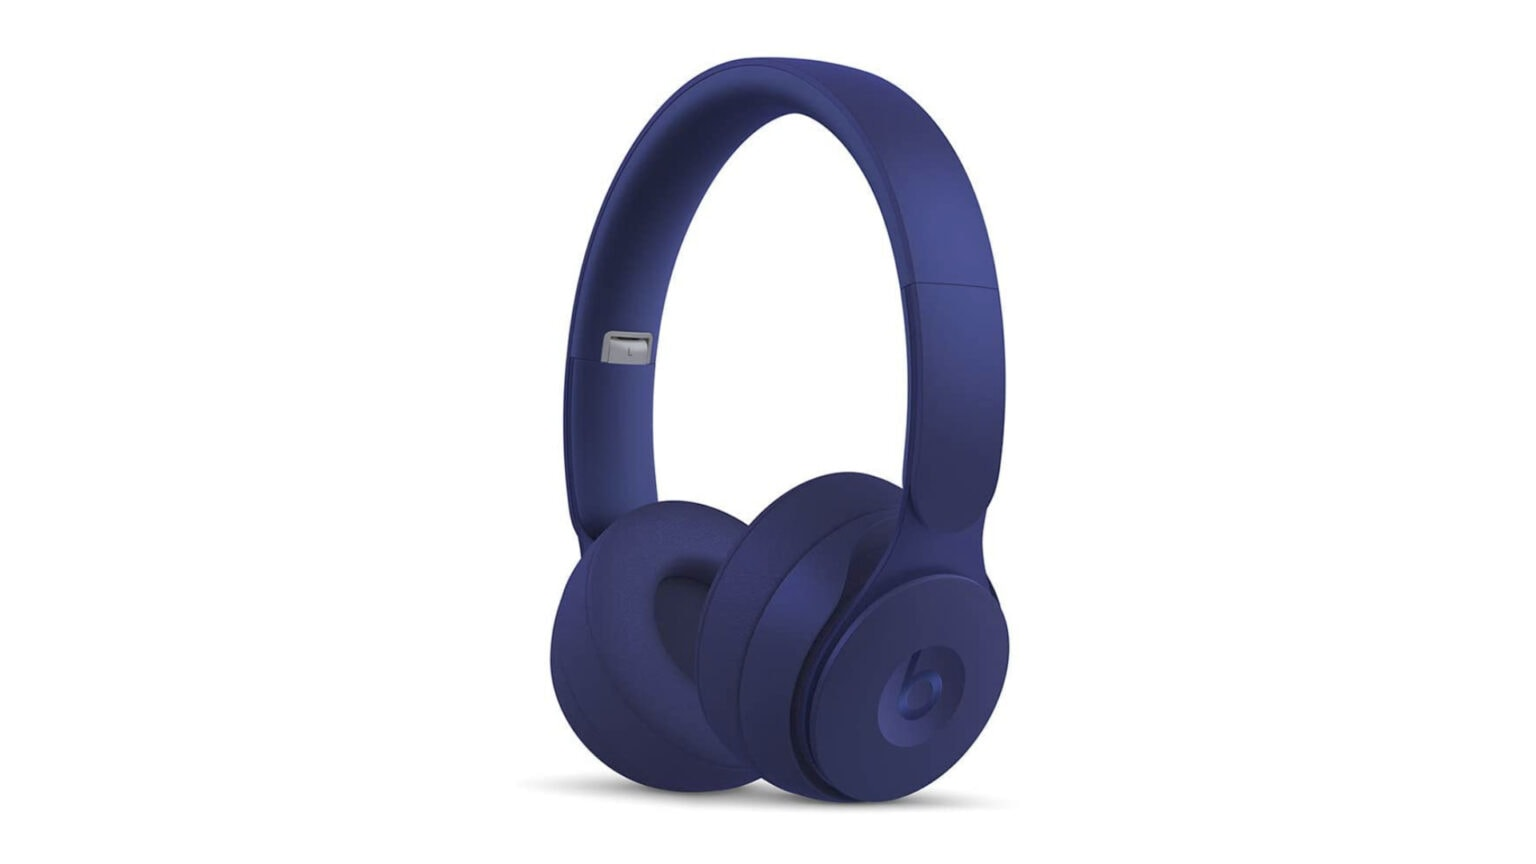 Get Beats Solo Pro at their lowest price yet